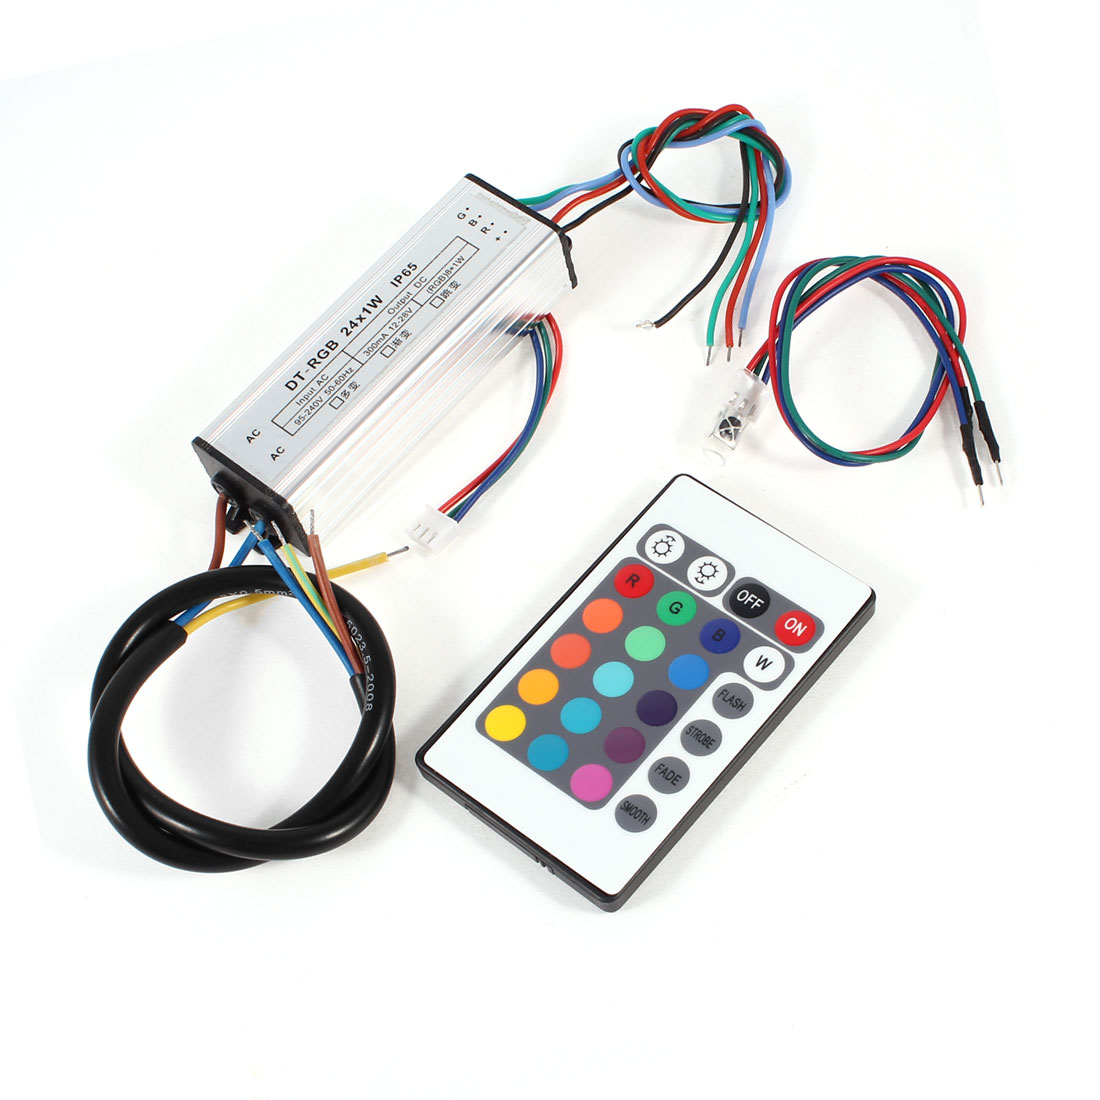 LED Driver Power Supply Transformer 24x1W with RGB Remote Control